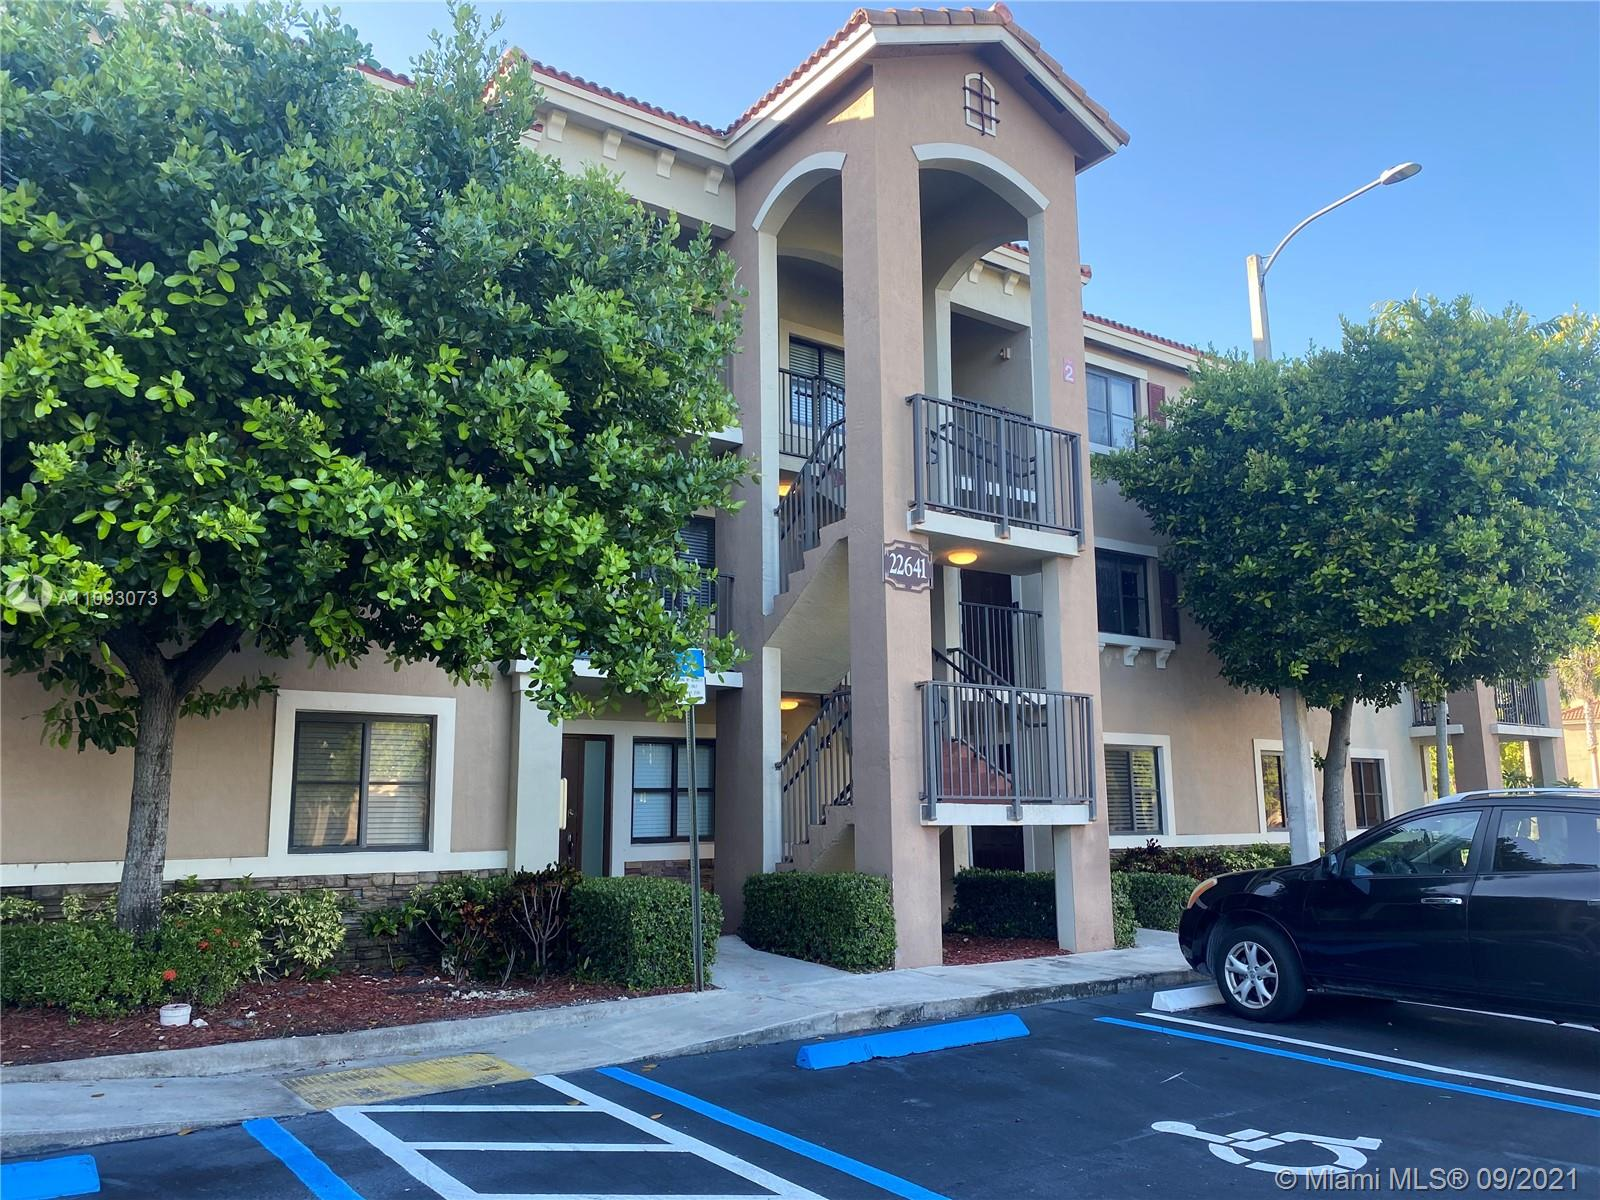 BEAUTIFUL CONDO 2 BEDROOMS 2 BATHROOMS IN PERFECT CONDITIONS, WITH NEW STAINLESS STEEL APPLIANCES.  QUIET COMMUNITY. Equal Housing Opportunity.